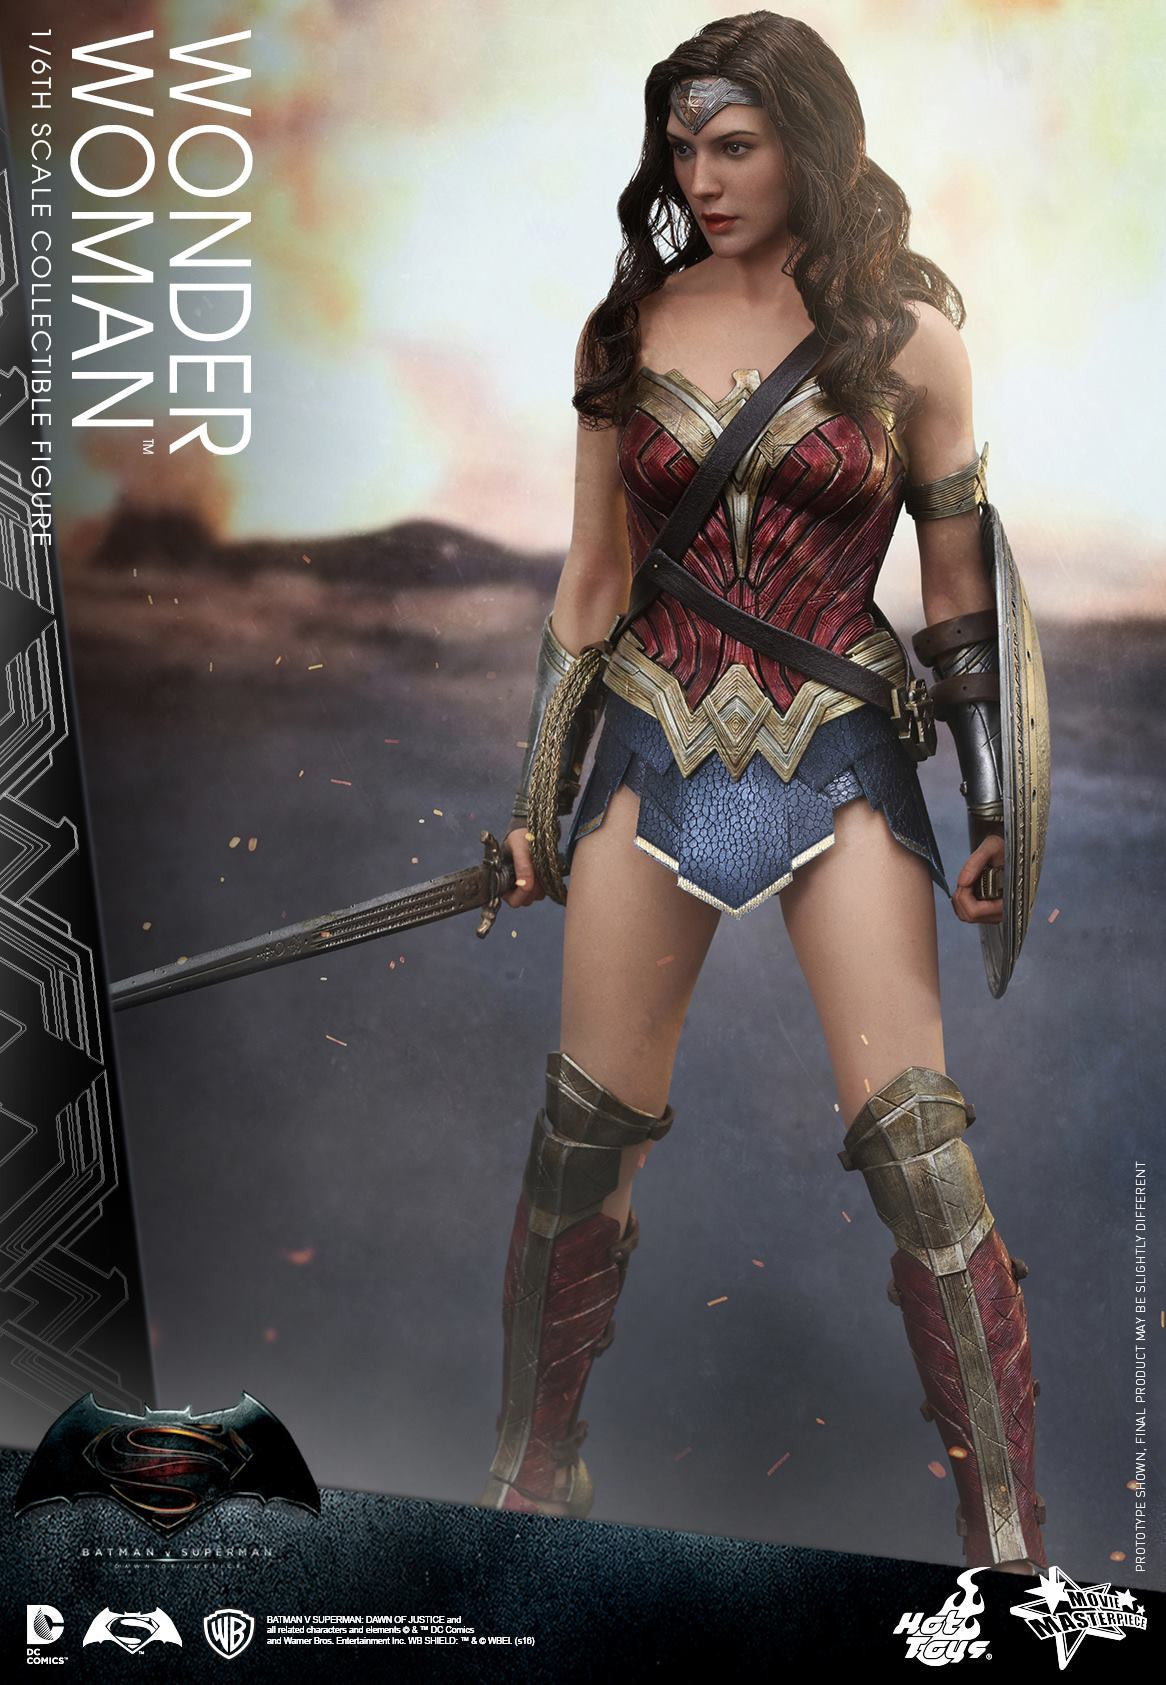 Hot Toys - Batman v Superman: Dawn of Justice - Wonder Woman MMS359 - Marvelous Toys - 1